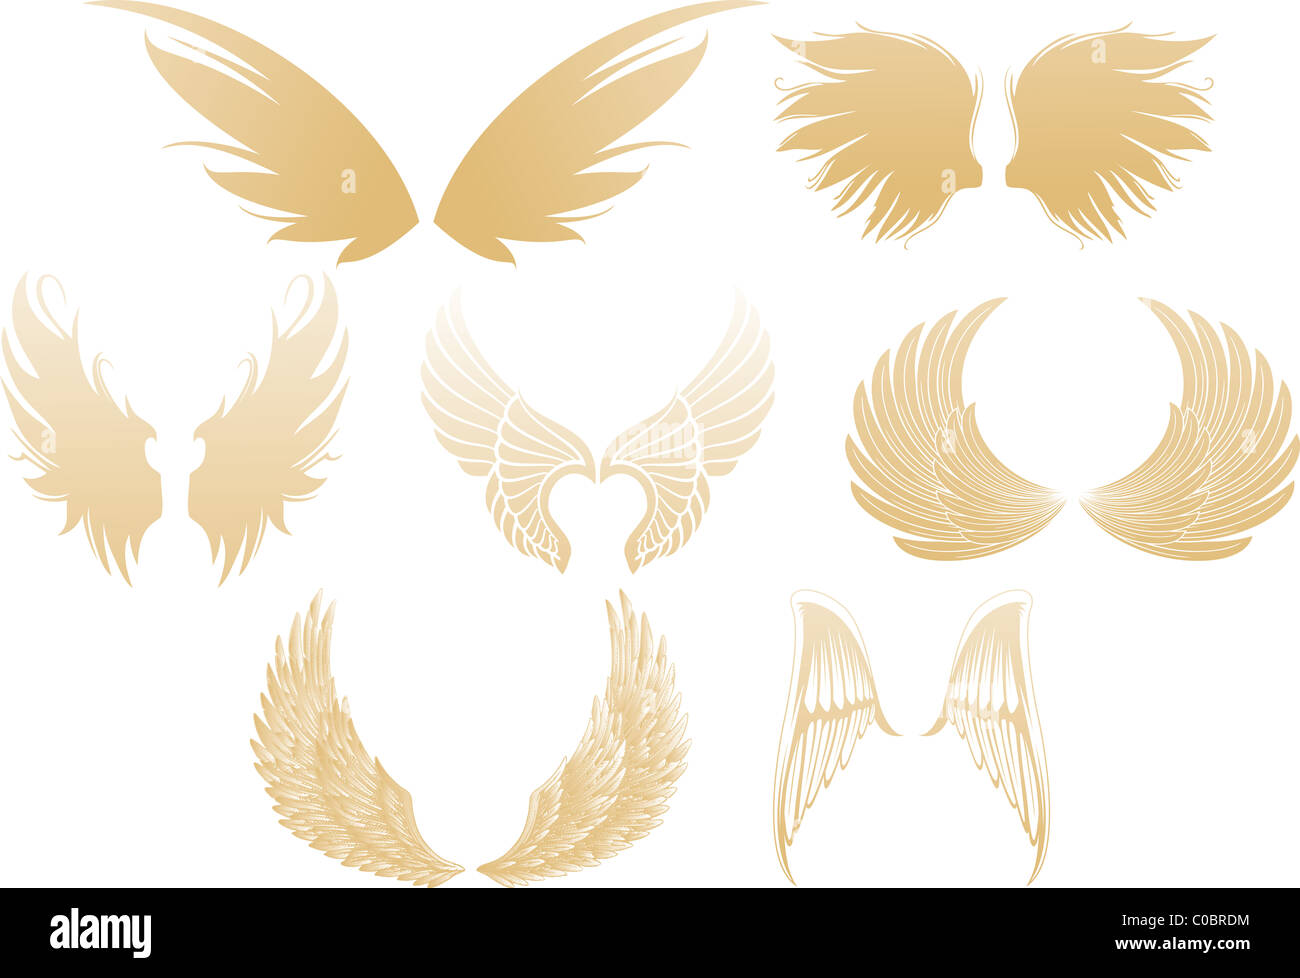 Set of various golden shimmering angel wings isolated on white background - Stock Image